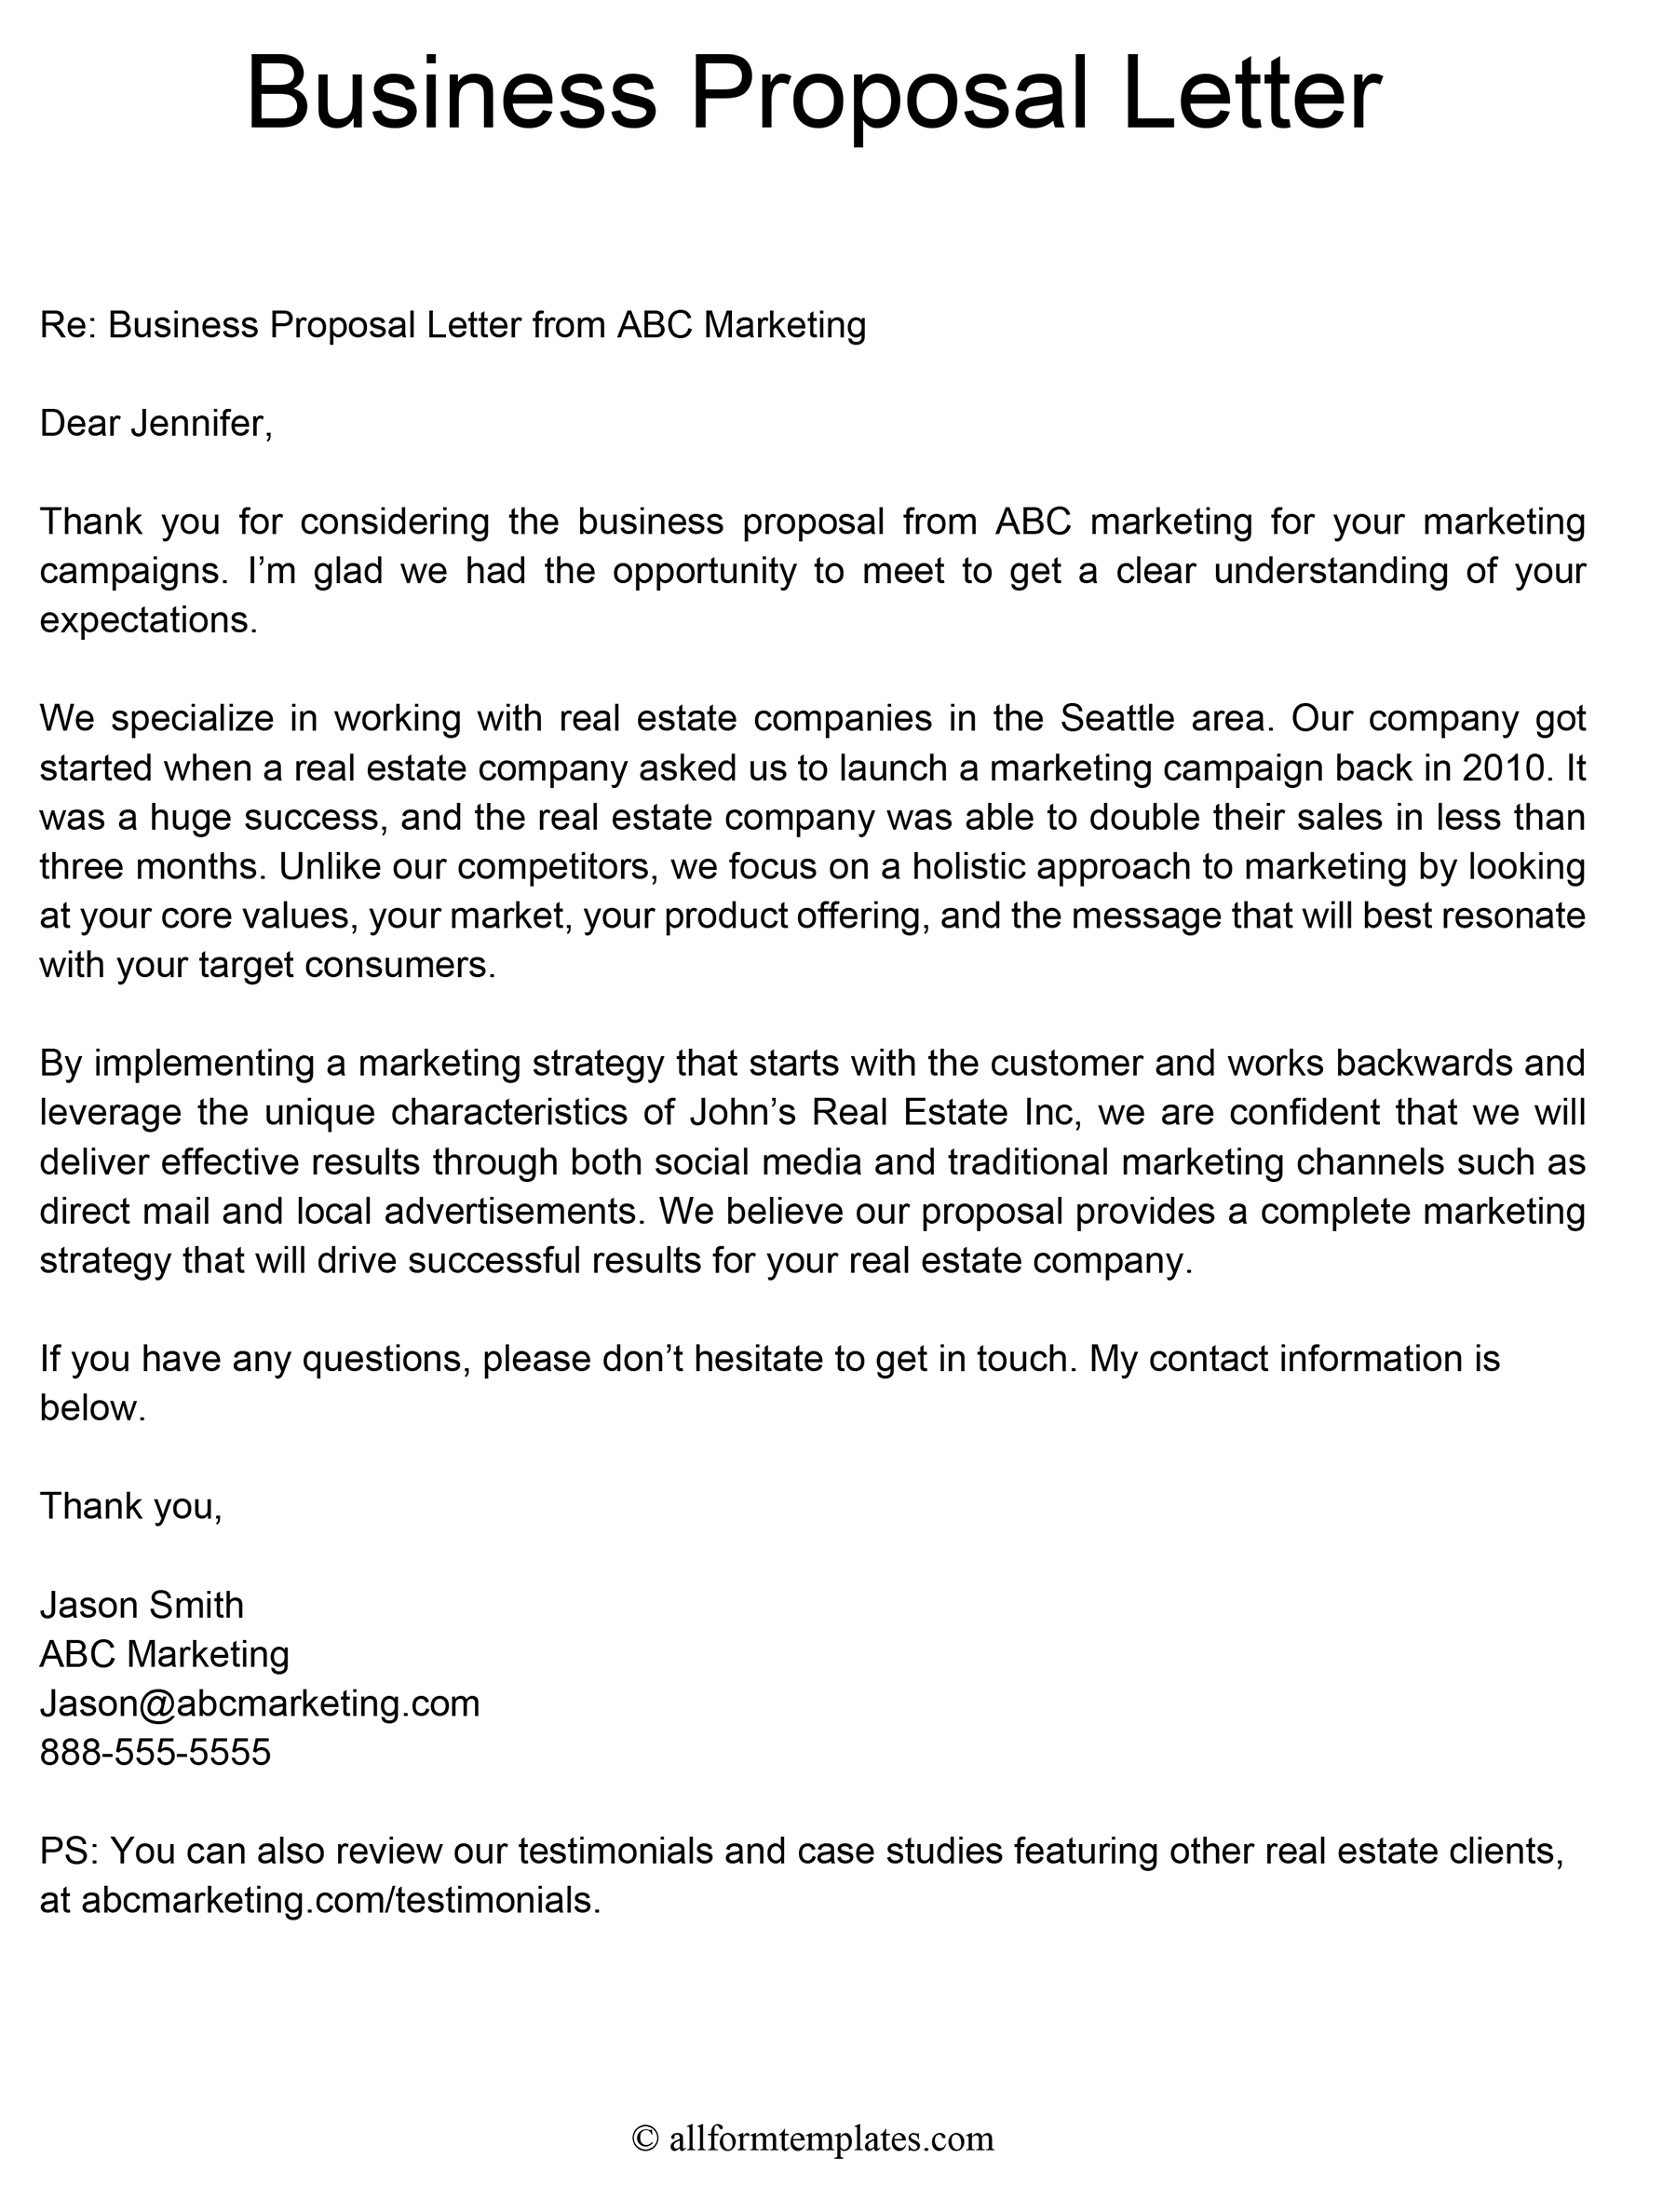 Business-Proposal-Letter-02-HD